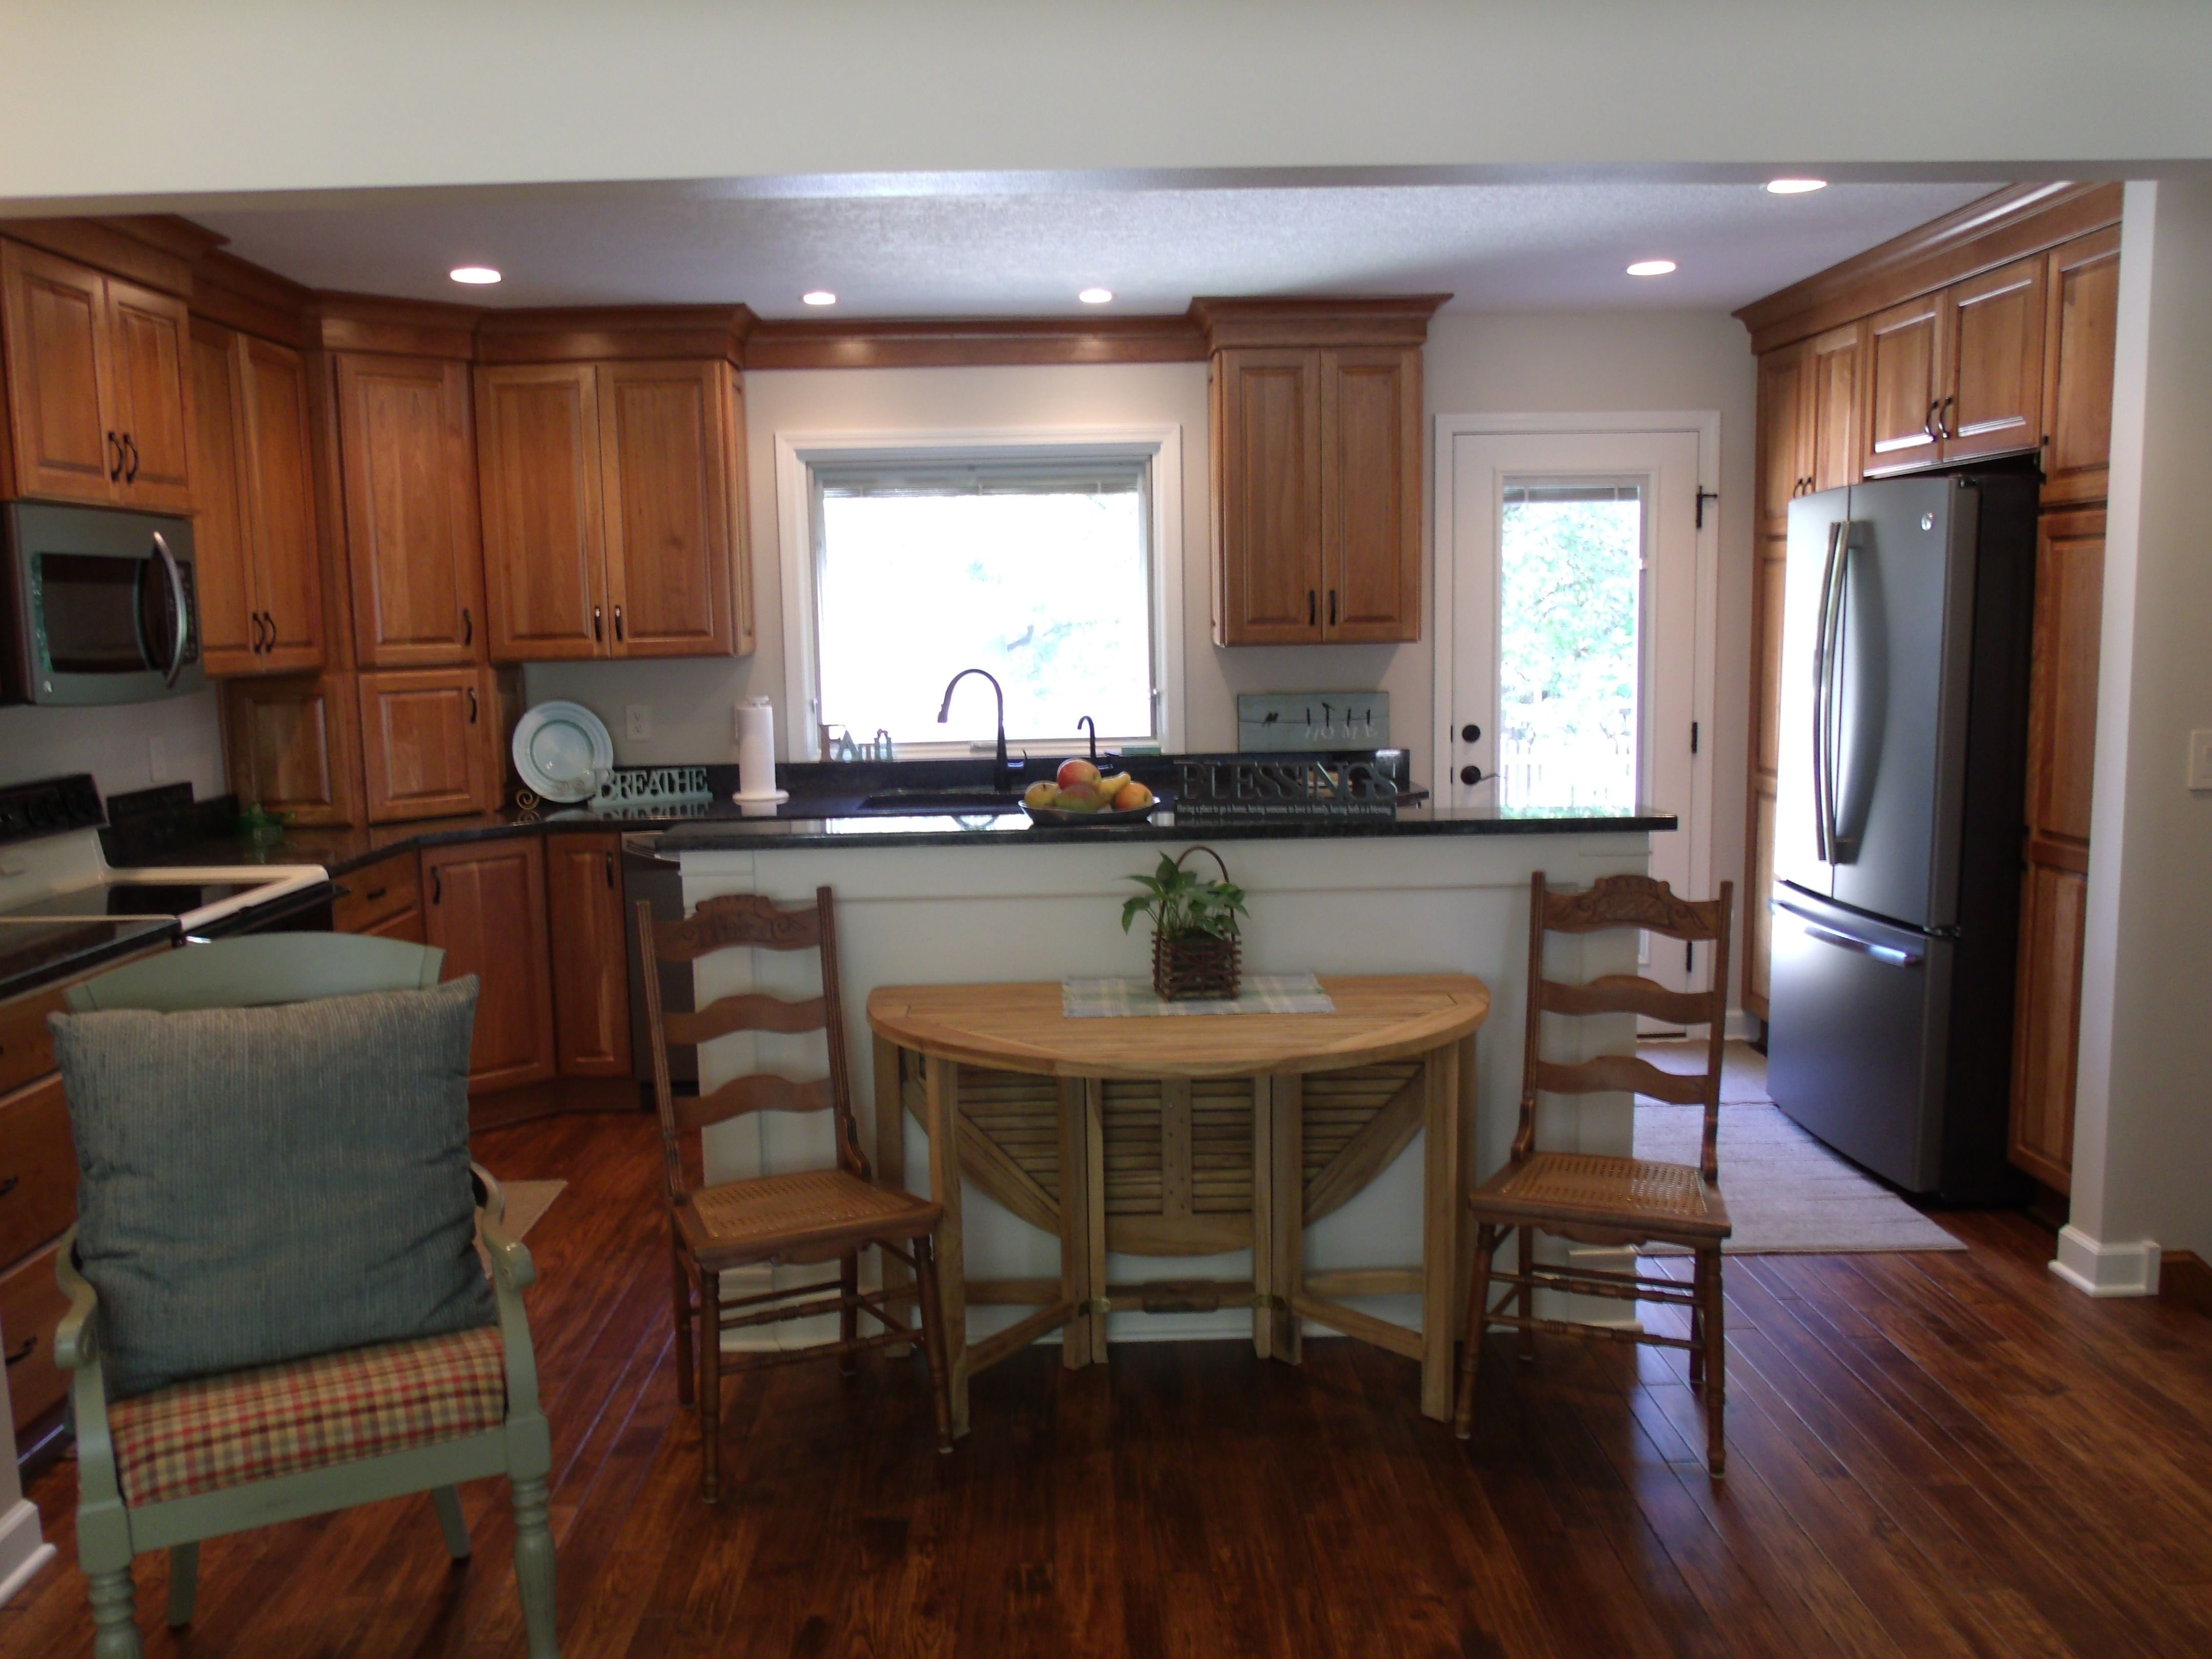 Merillat Cabinets In The Tour Of Remodeled Homes In Des